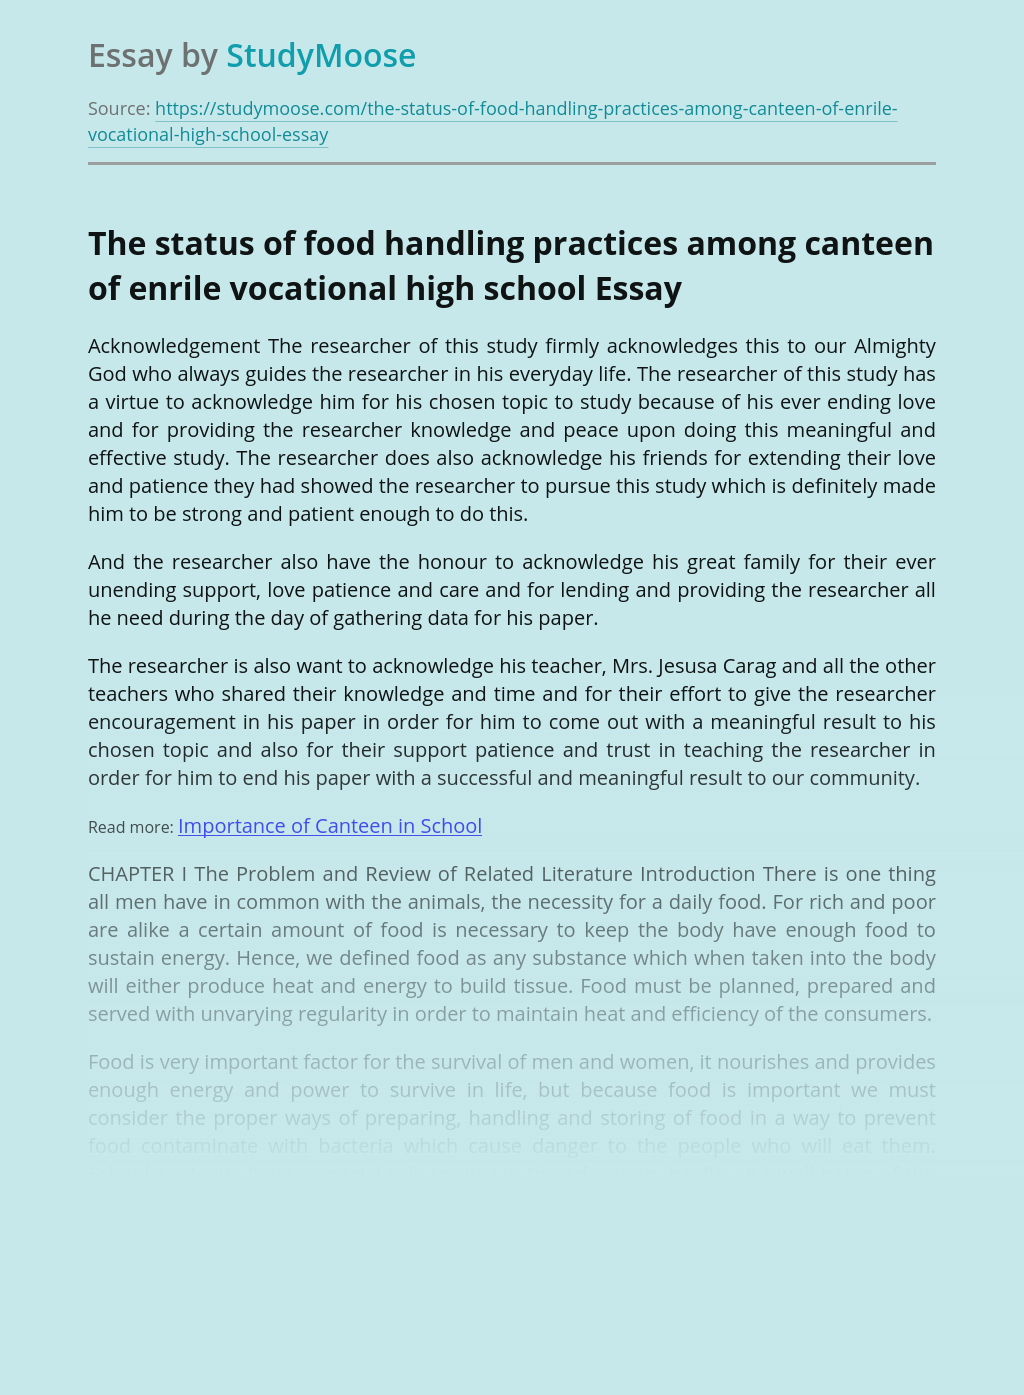 The status of food handling practices among canteen of enrile vocational high school